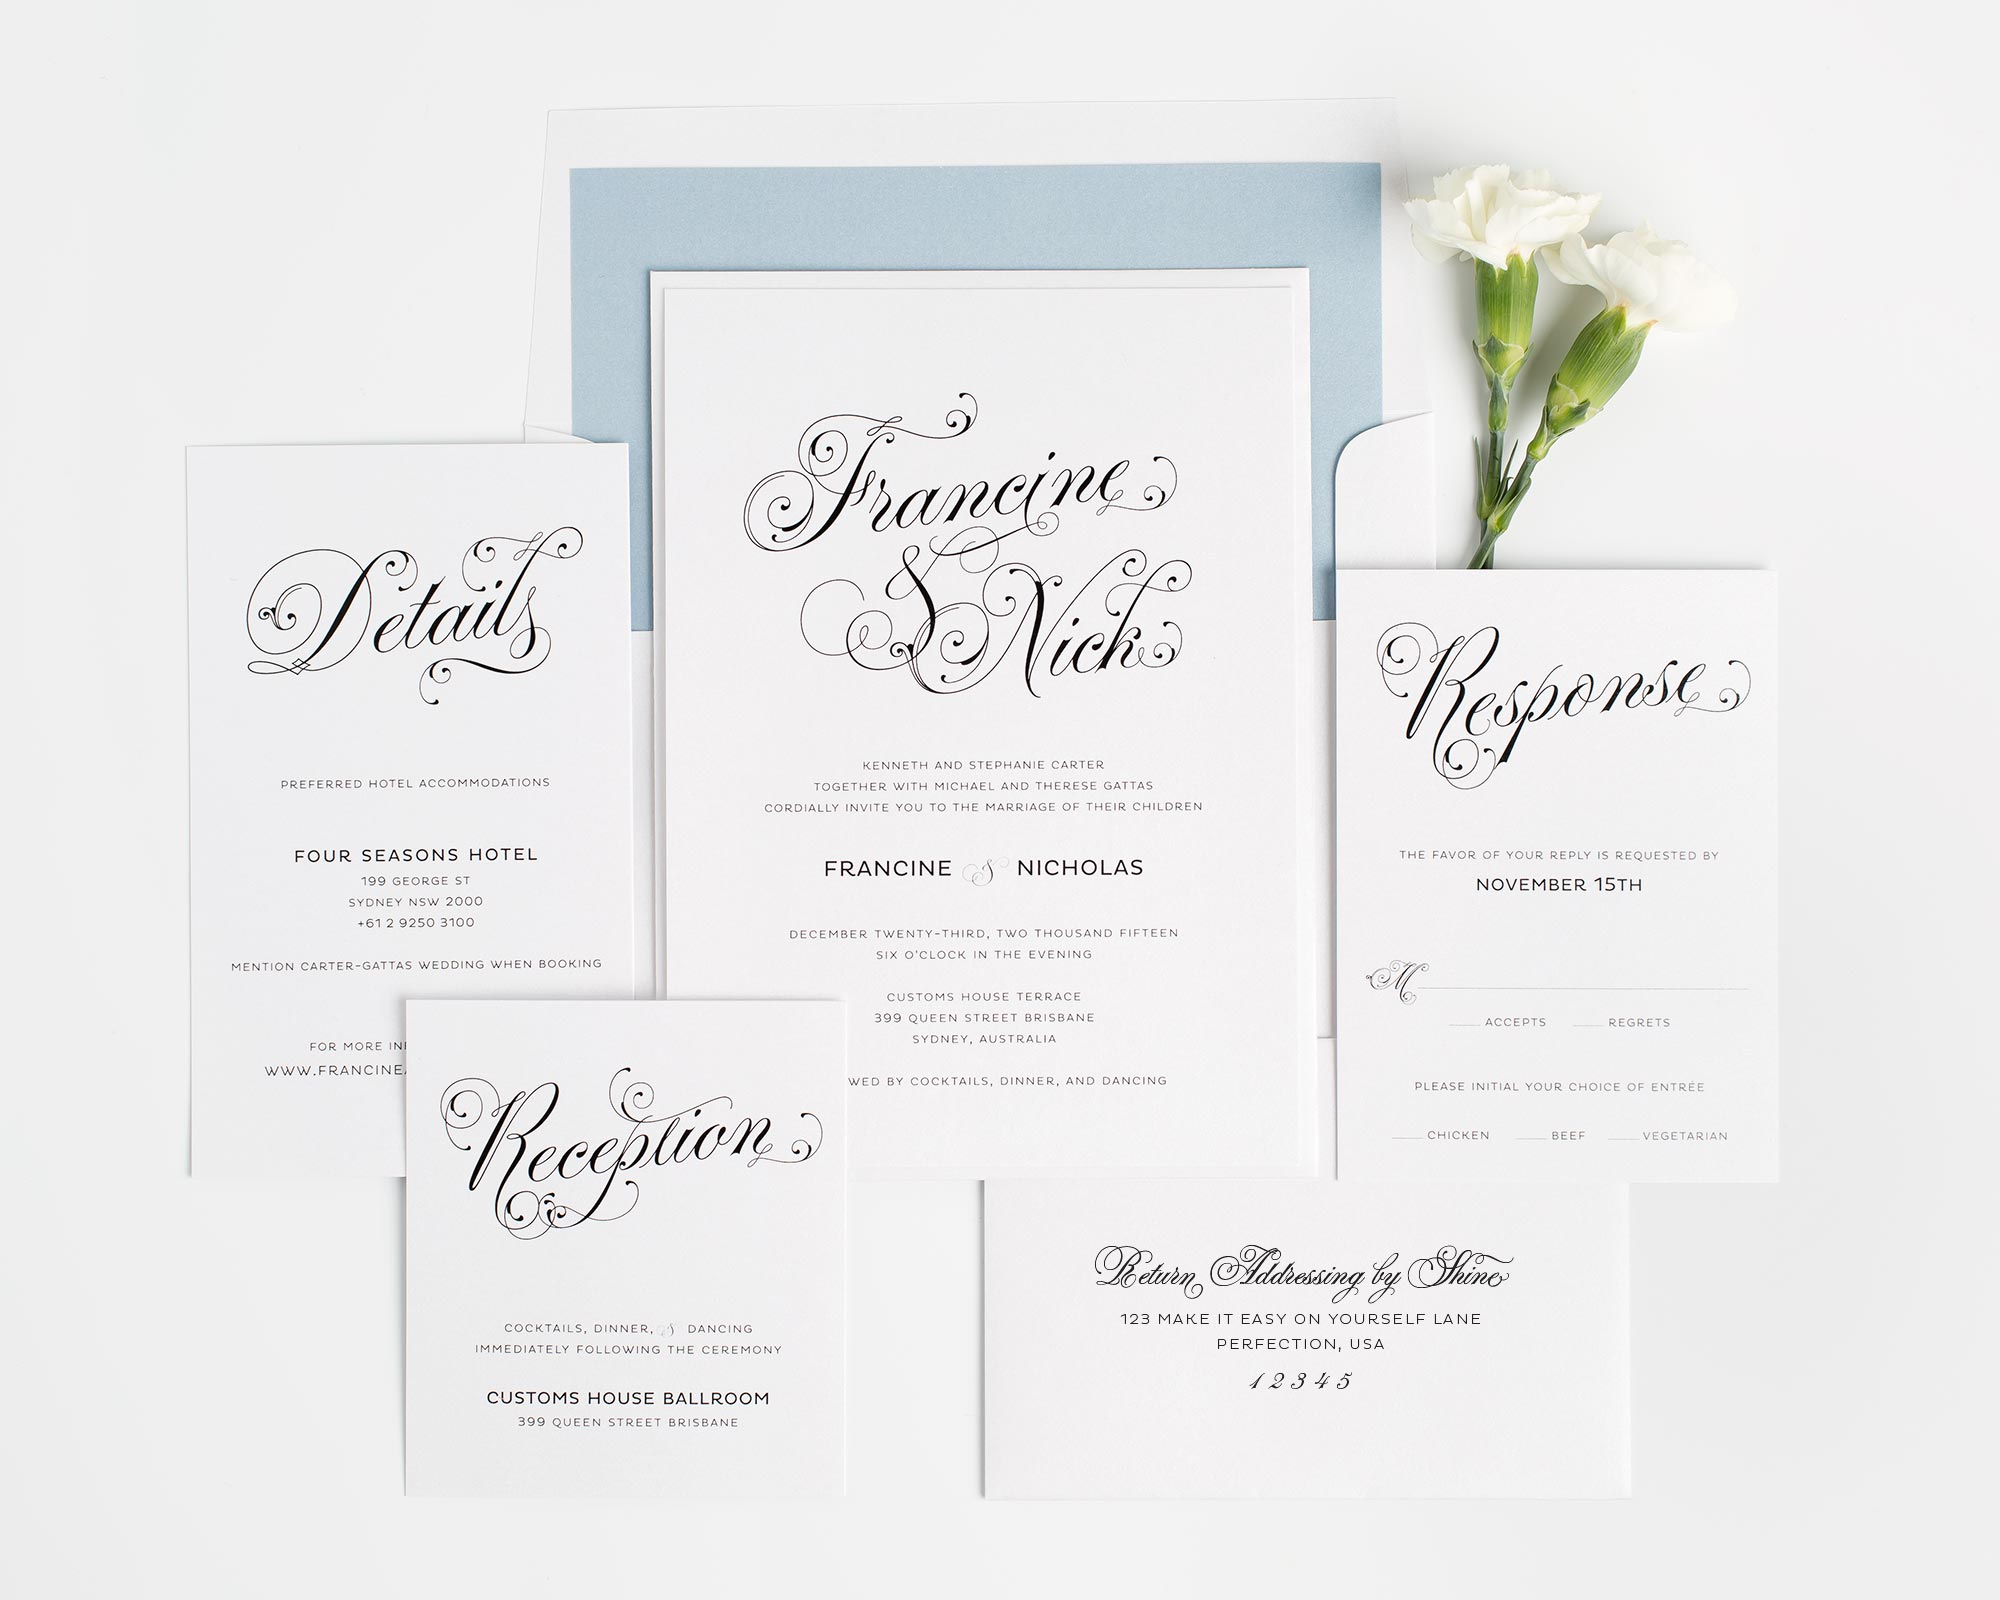 Glamorous script wedding invitations wedding invitations by shine vintage wedding invitation with envelope previous next solutioingenieria Image collections